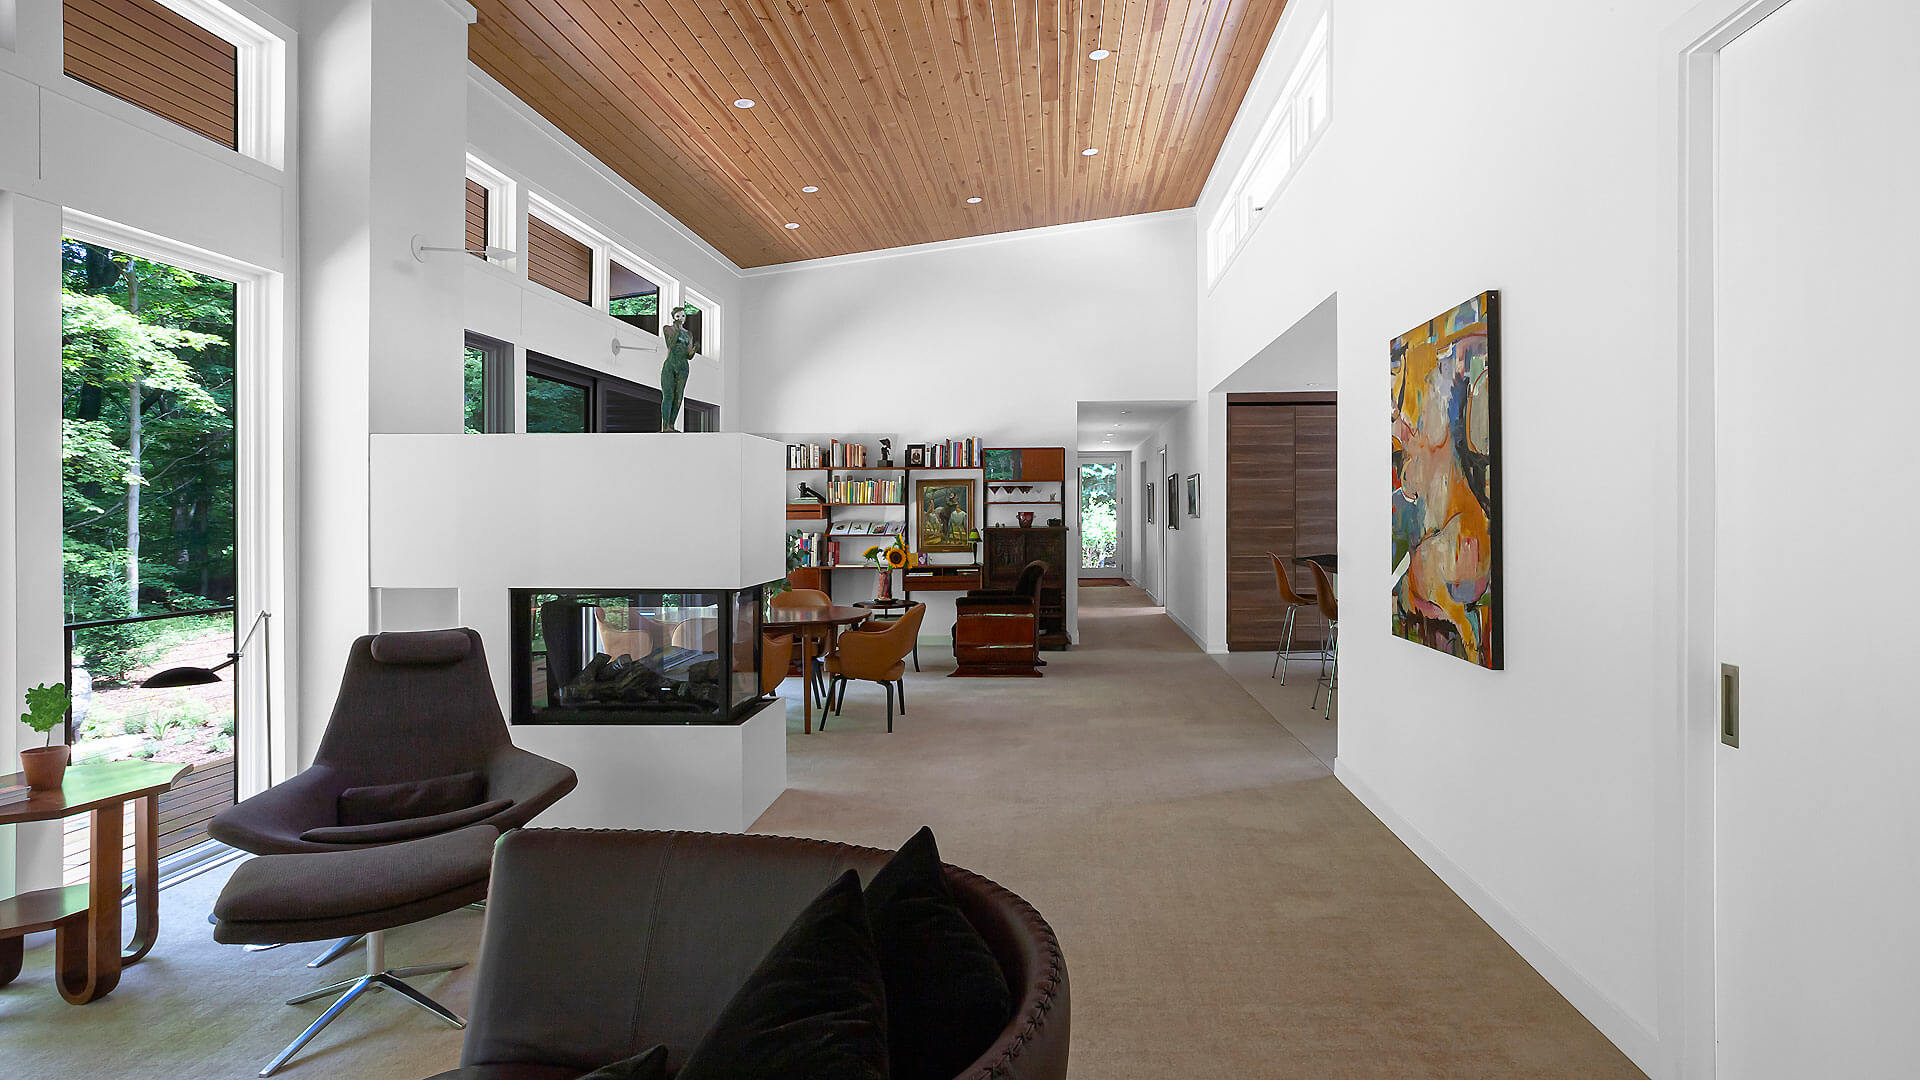 Open concept Living-Dining space optimizes natural light and panoramic views of Pier Cove Valley (photo view looking east) - Bridge House - Fennville, Michigan - Lake Michigan